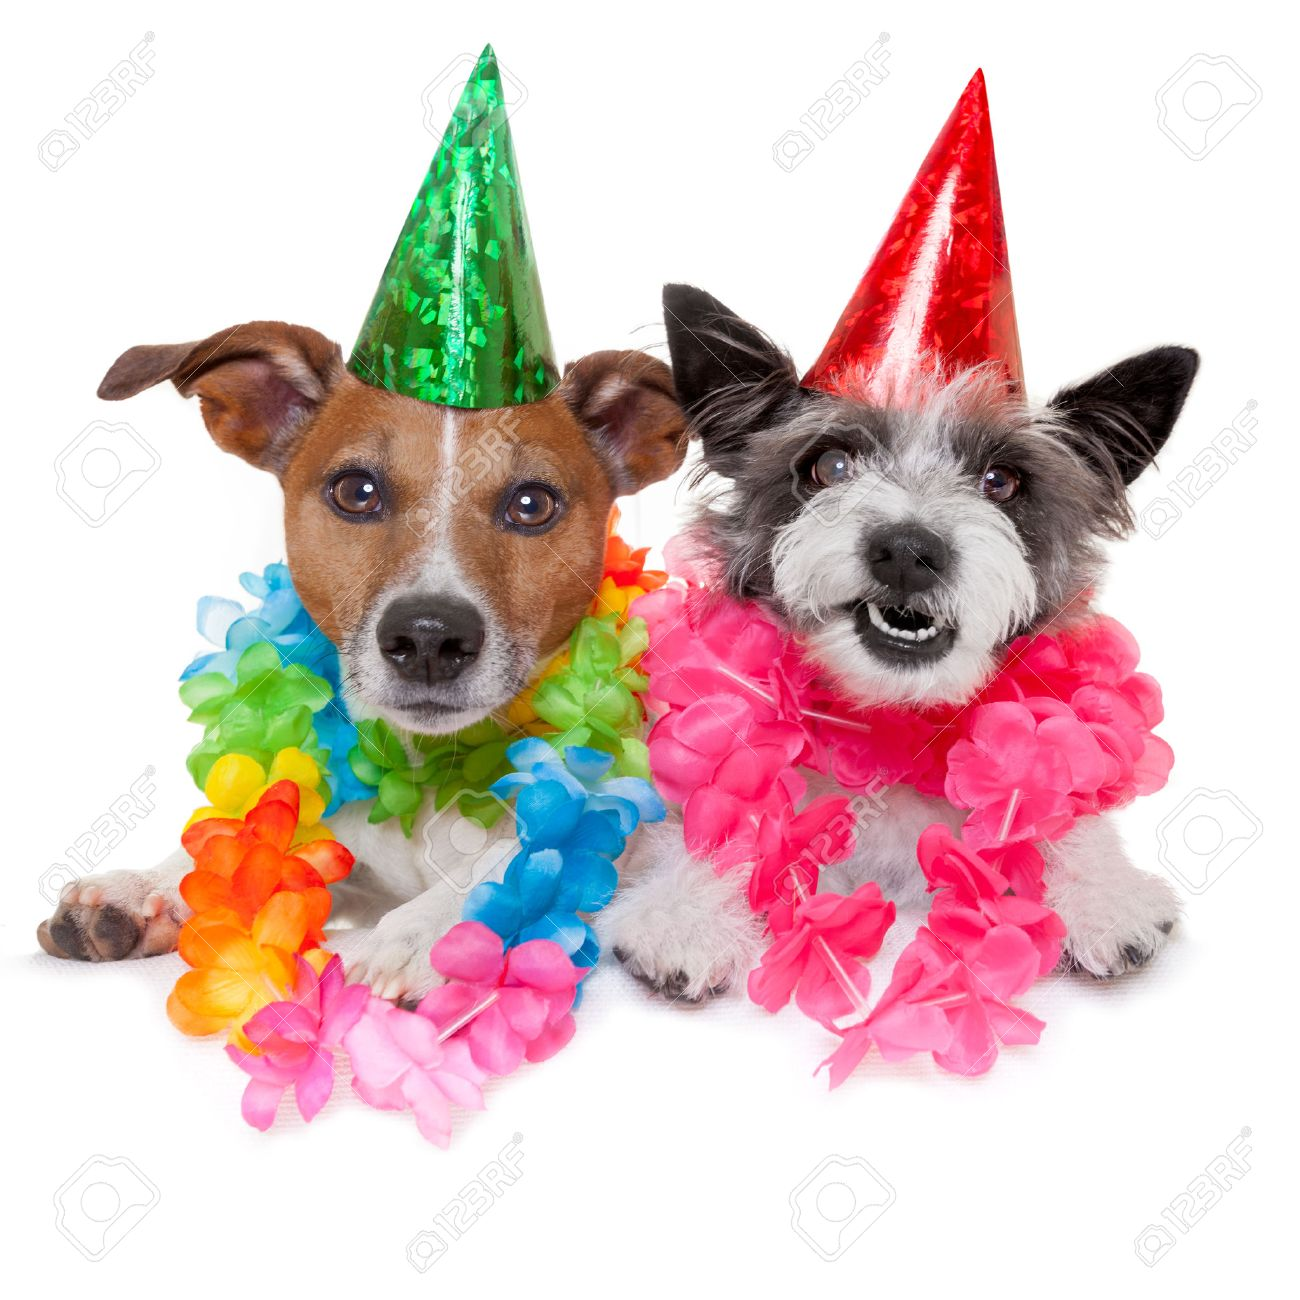 two funny birthday dogs celebrating close together as a couple - 27788558